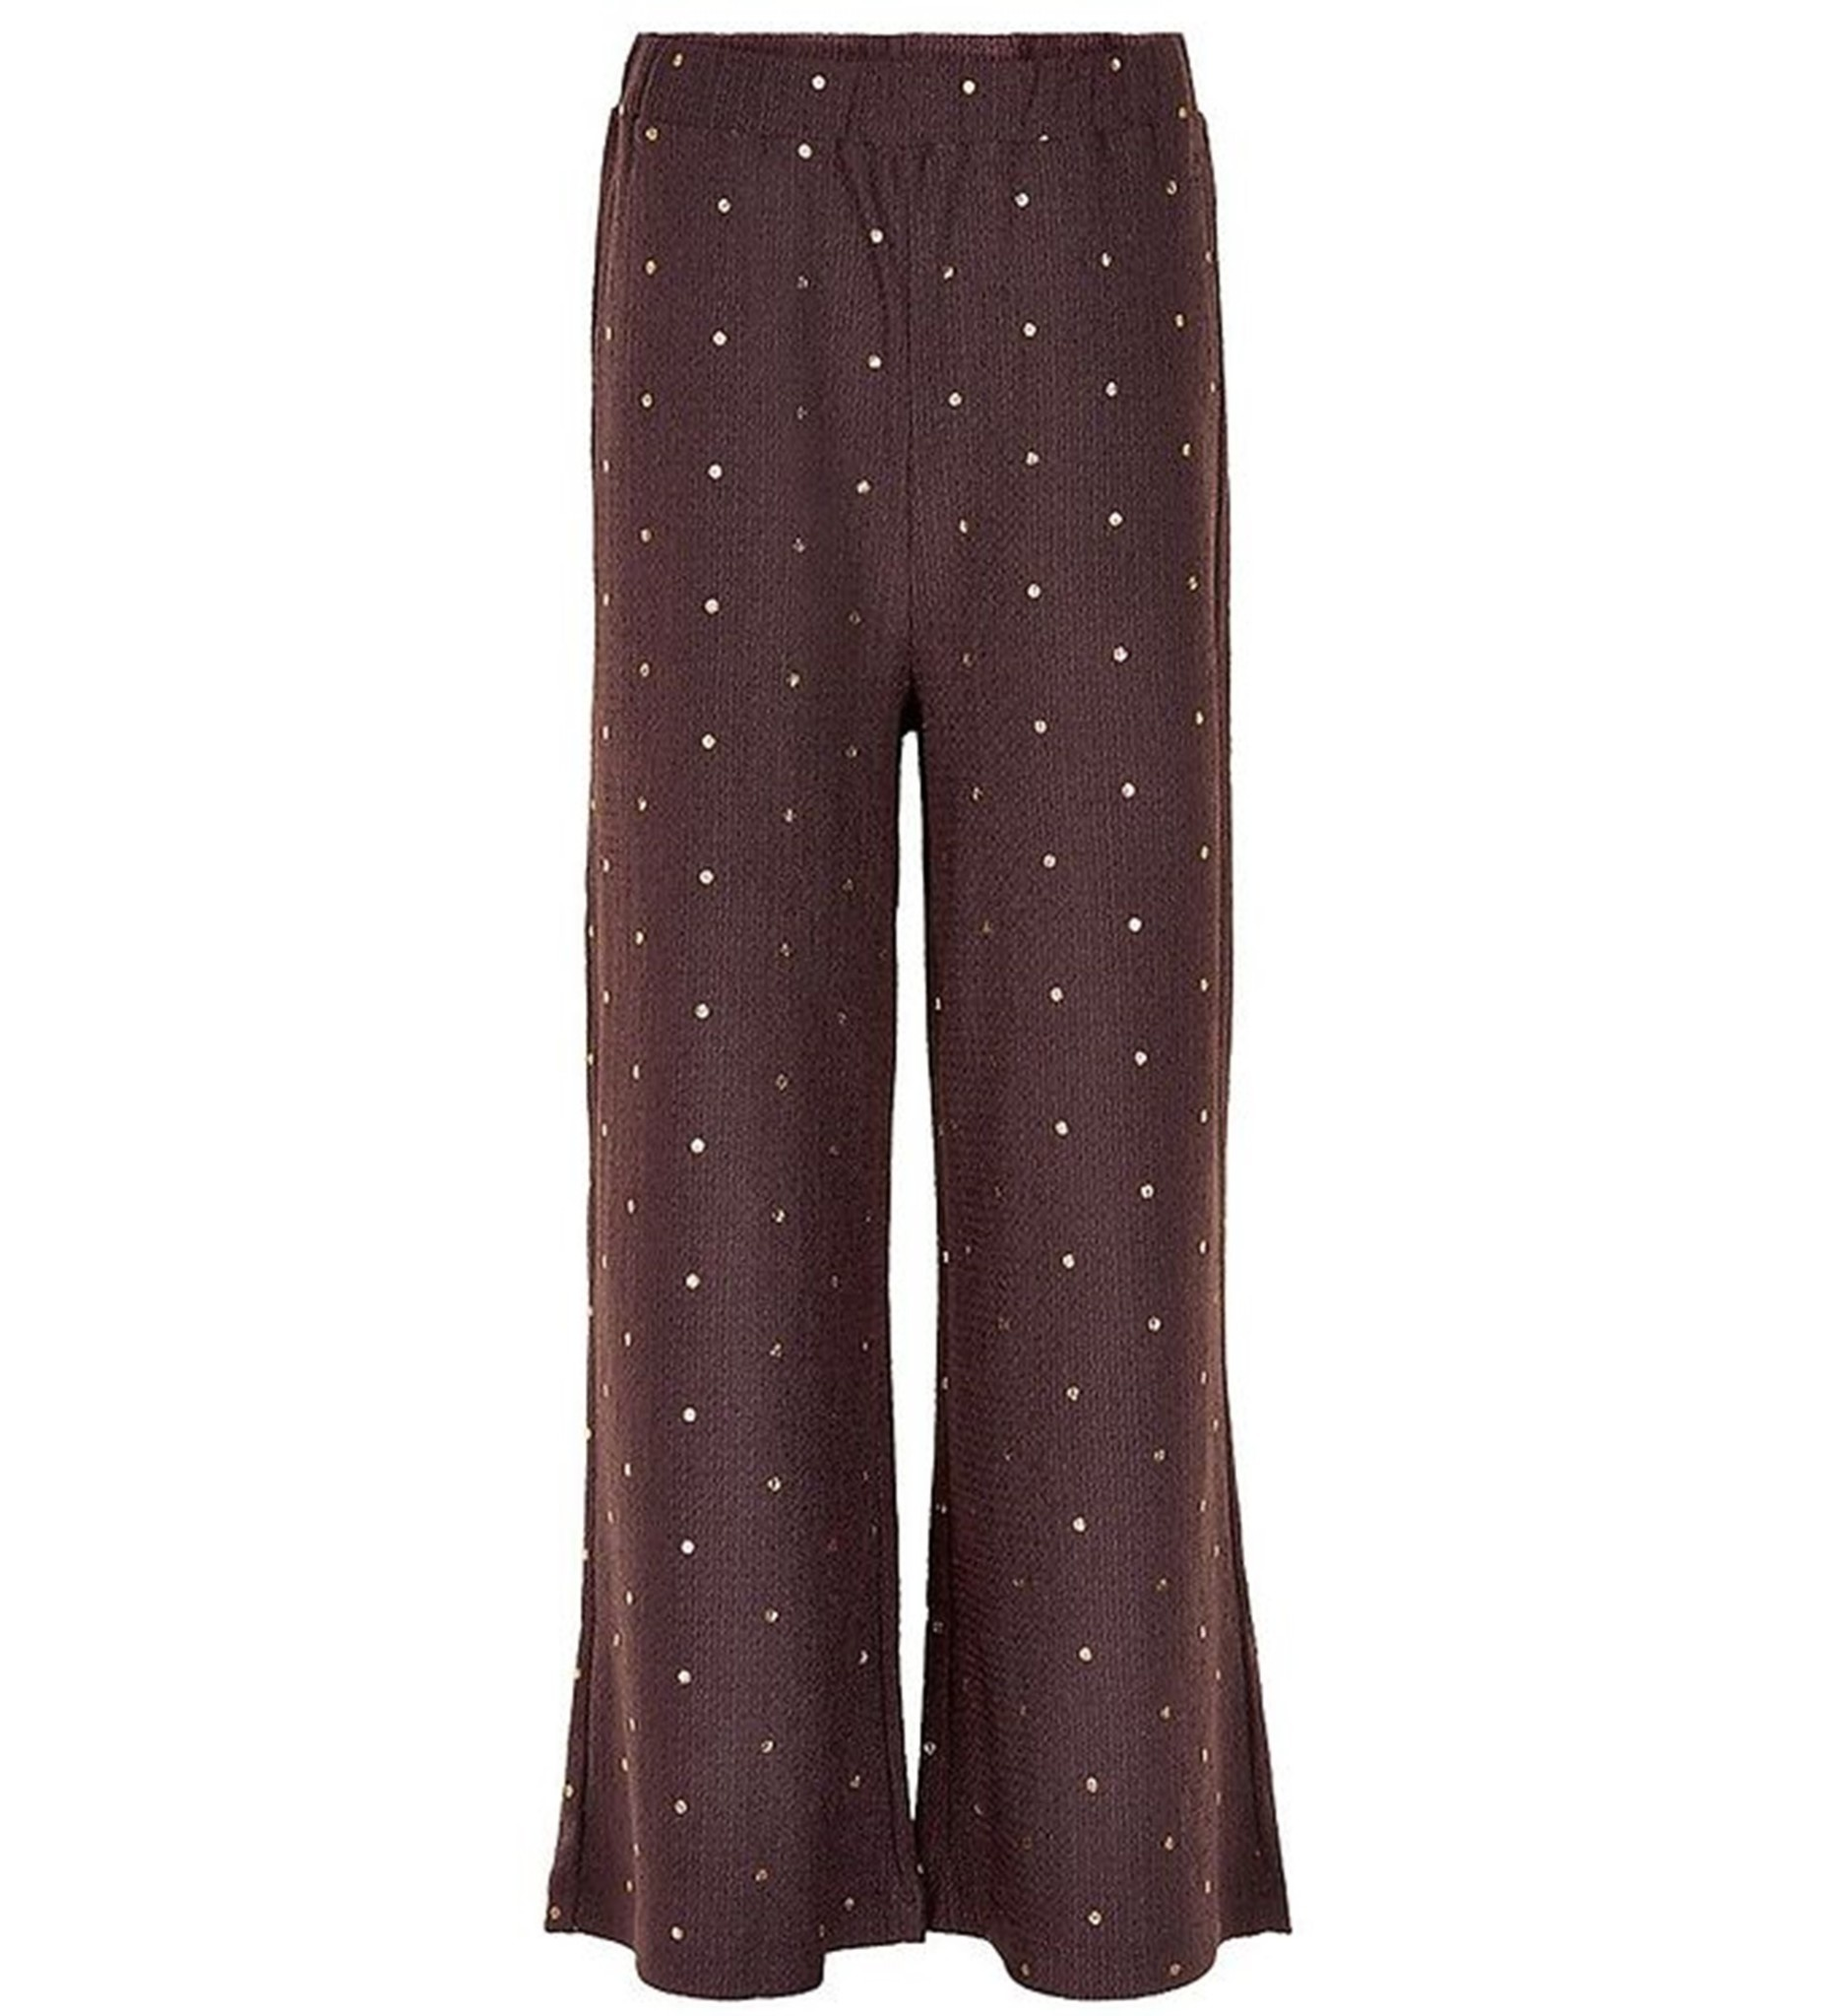 The New The new - Riley wide pants sassafras